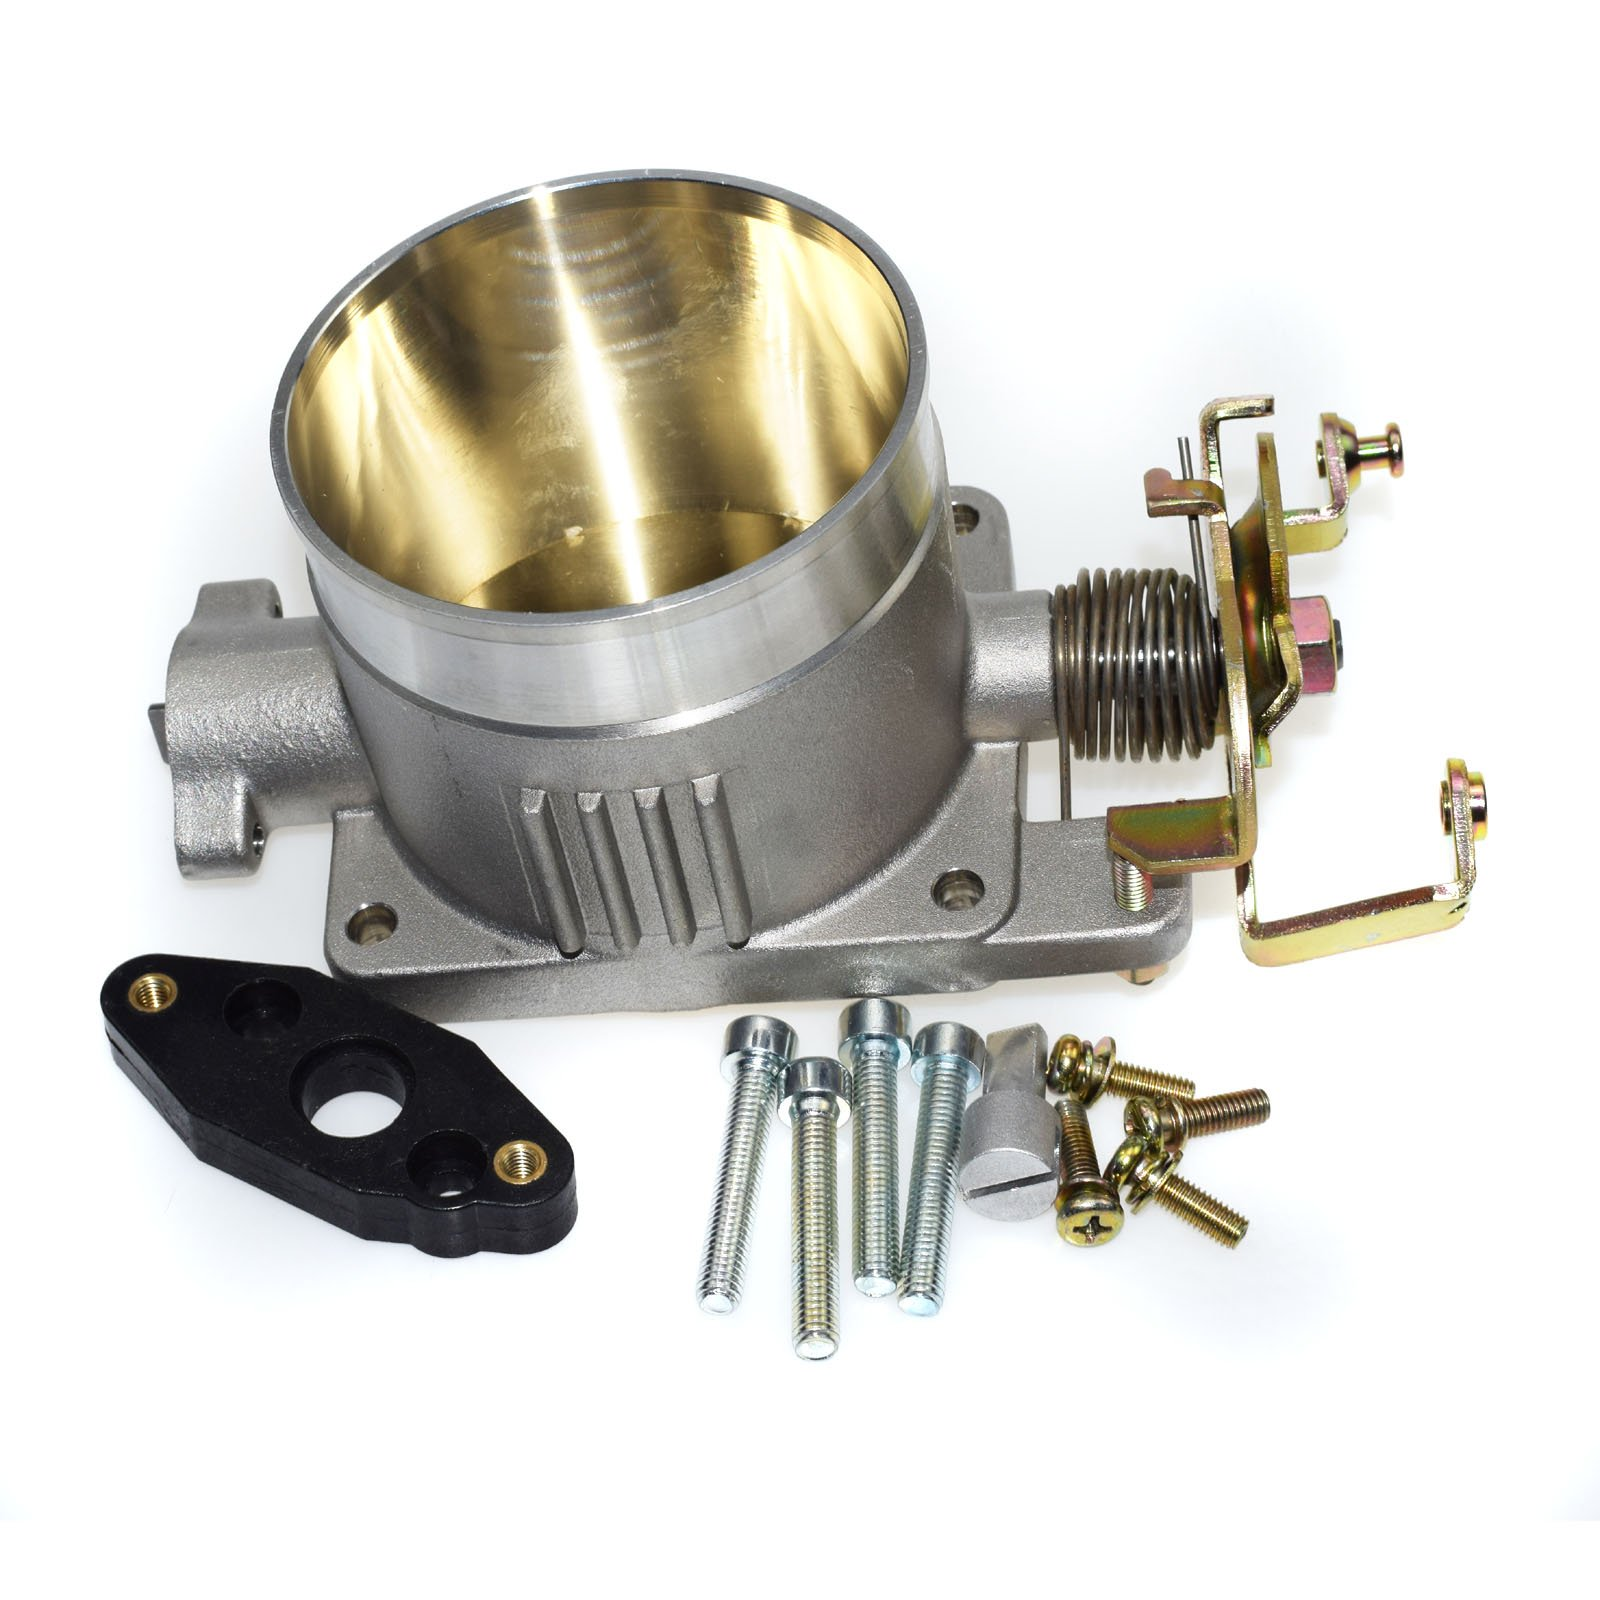 New Throttle Body Direct Bolt fit for Ford Musang 4.6L 2V 75mm